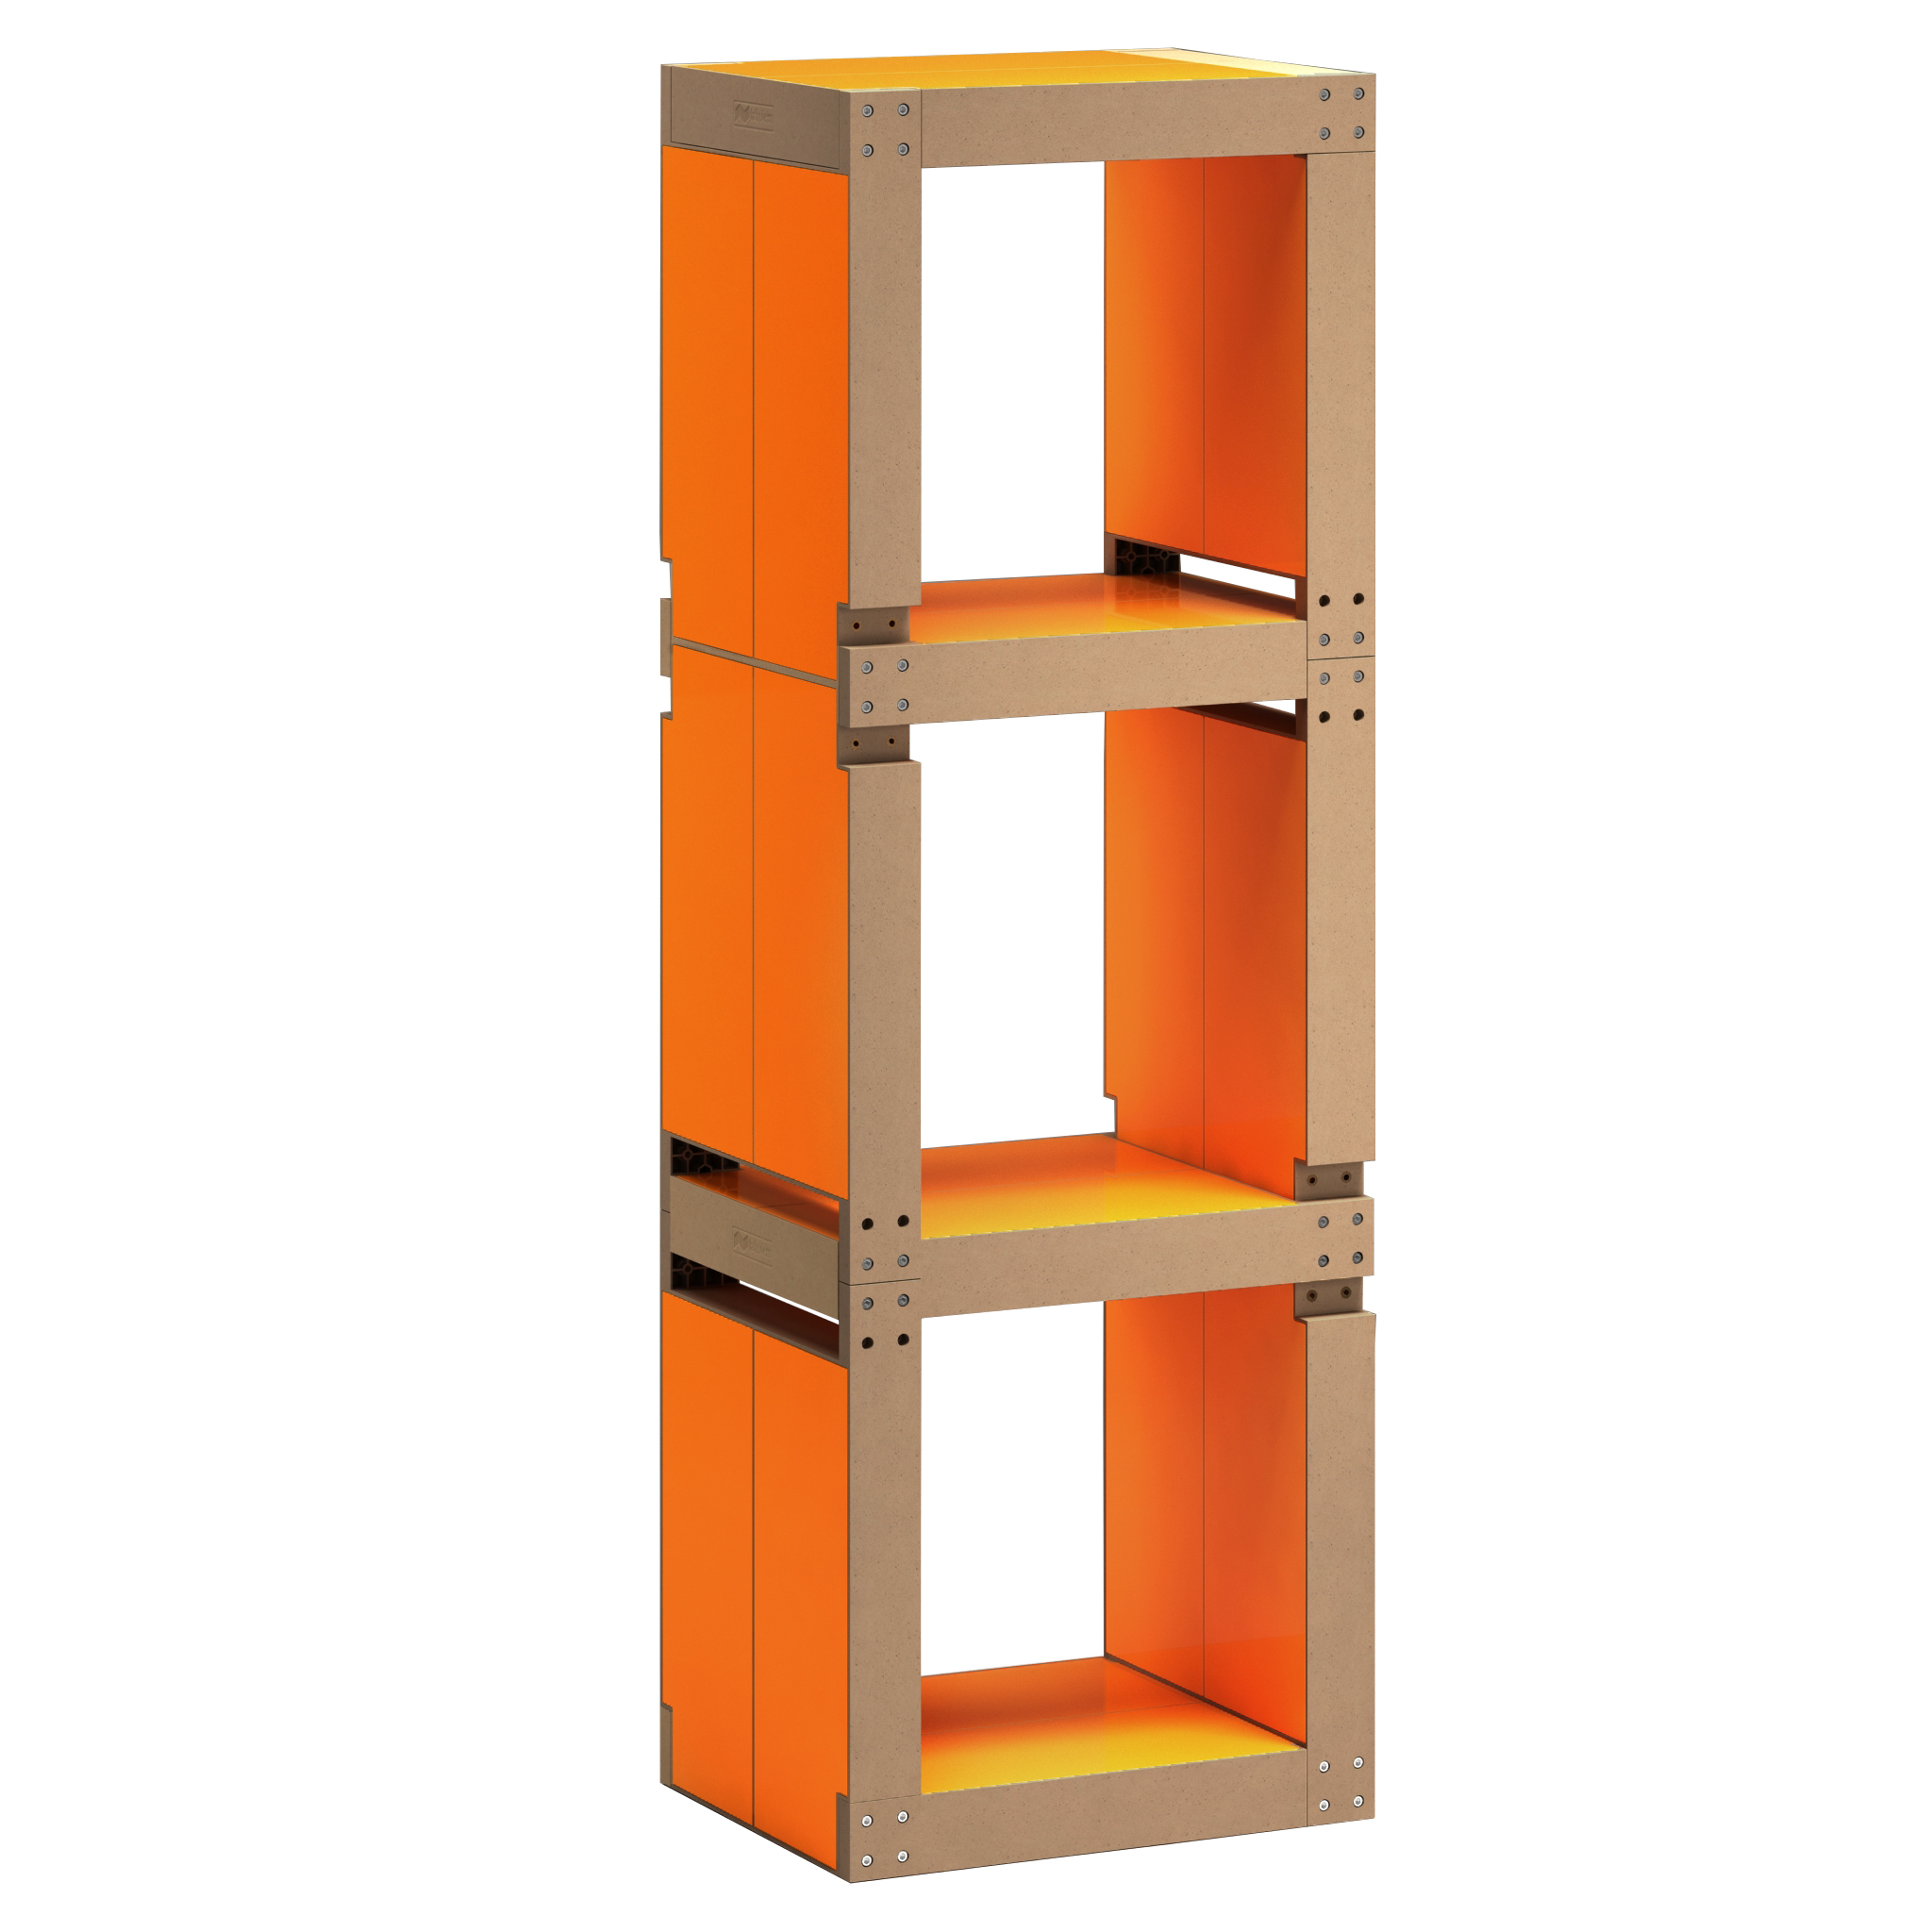 etag re de bureau design orange structure noire ou bois. Black Bedroom Furniture Sets. Home Design Ideas